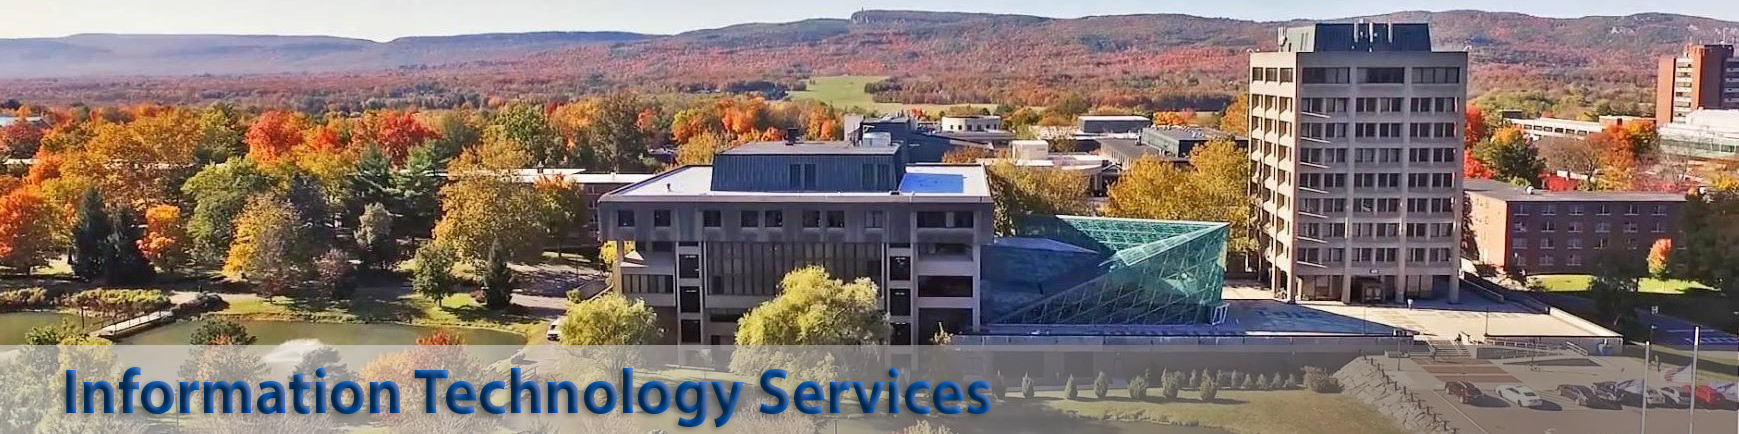 Picture of Student Union Building.  Text says Information technology services